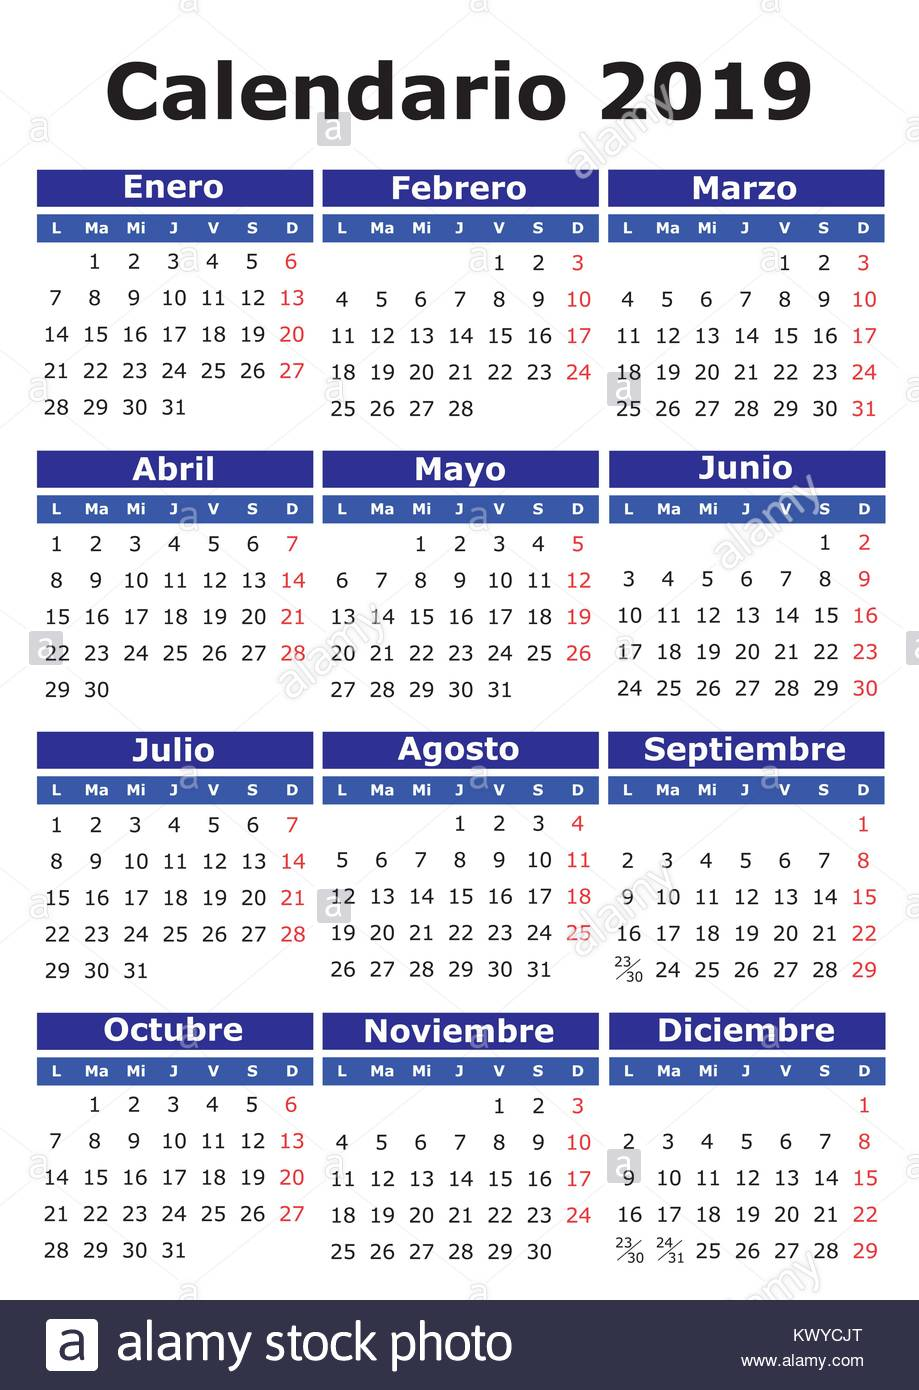 Calendario 20 18.2019 Vector Calendar In Spanish Easy For Edit And Apply